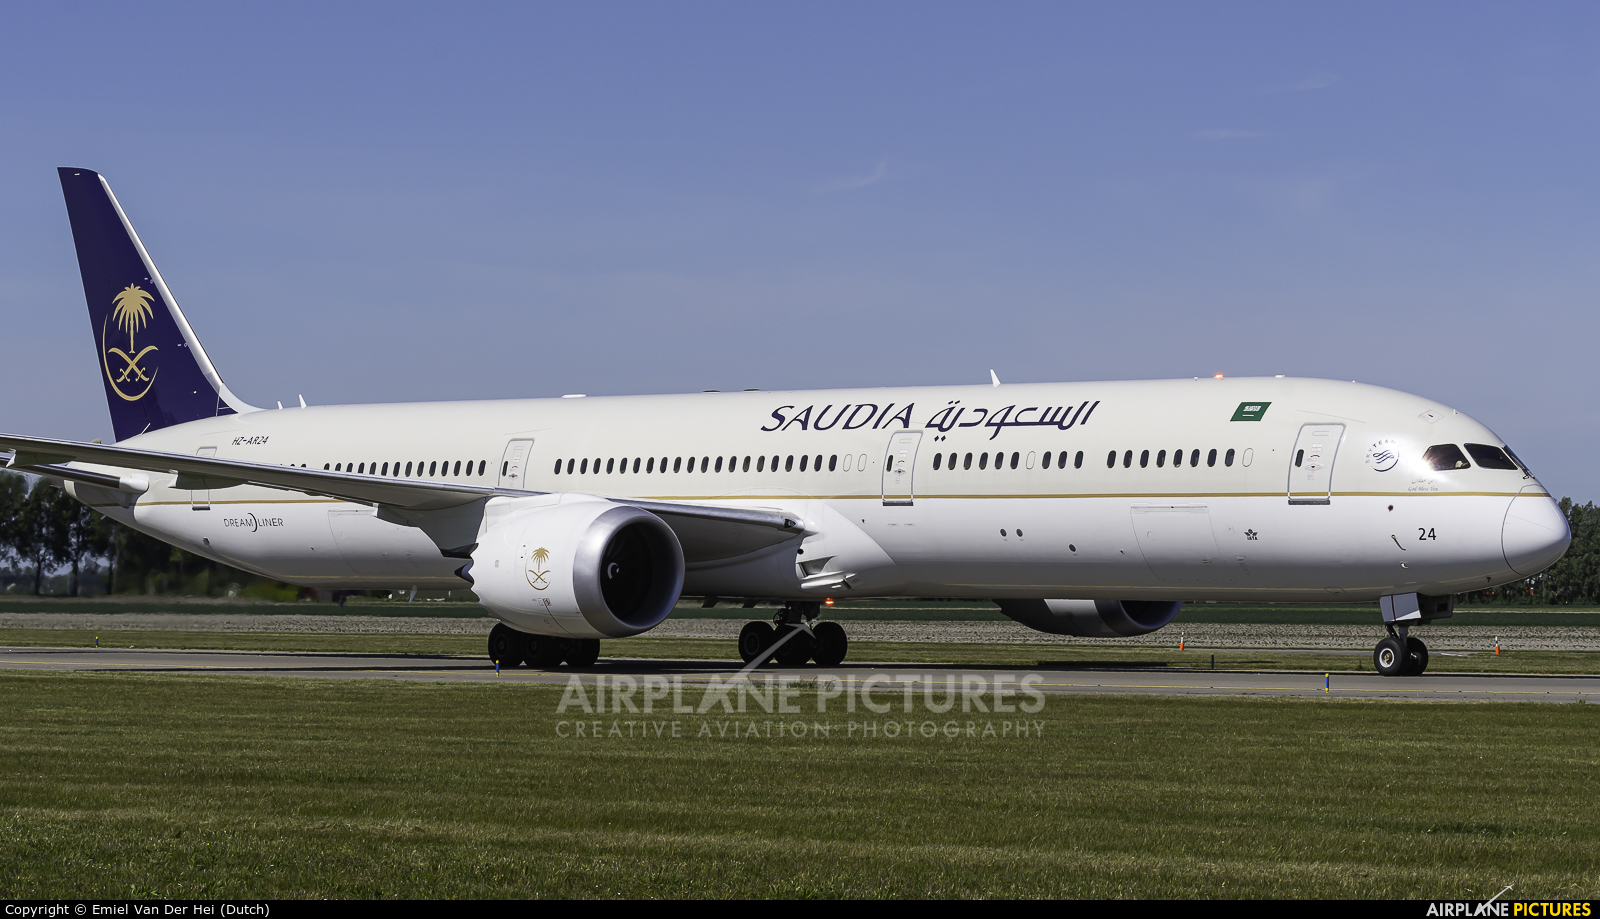 Saudi Arabian Airlines HZ-AR24 aircraft at Amsterdam - Schiphol